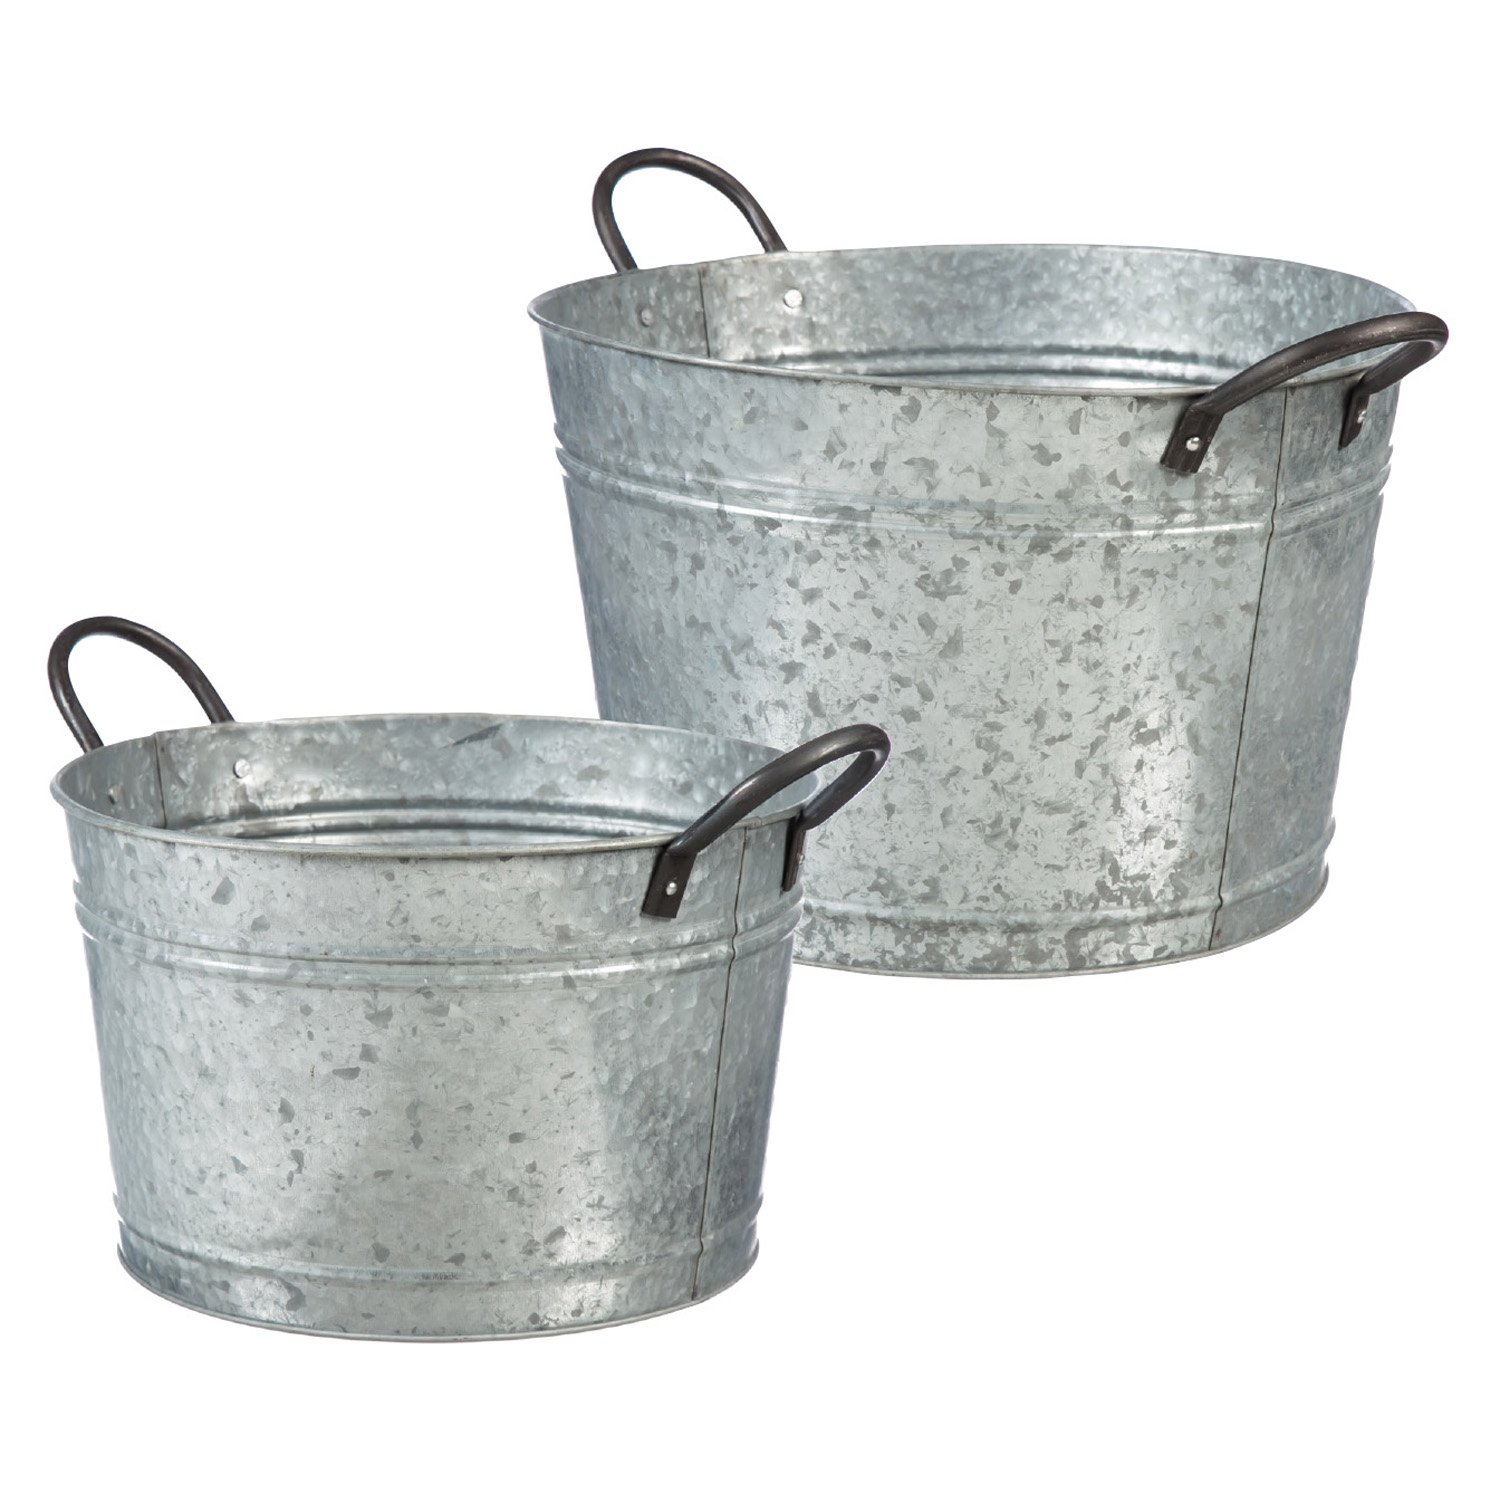 Evergreen Garden Urban Garden Galvanized Metal Buckets, Set of 2